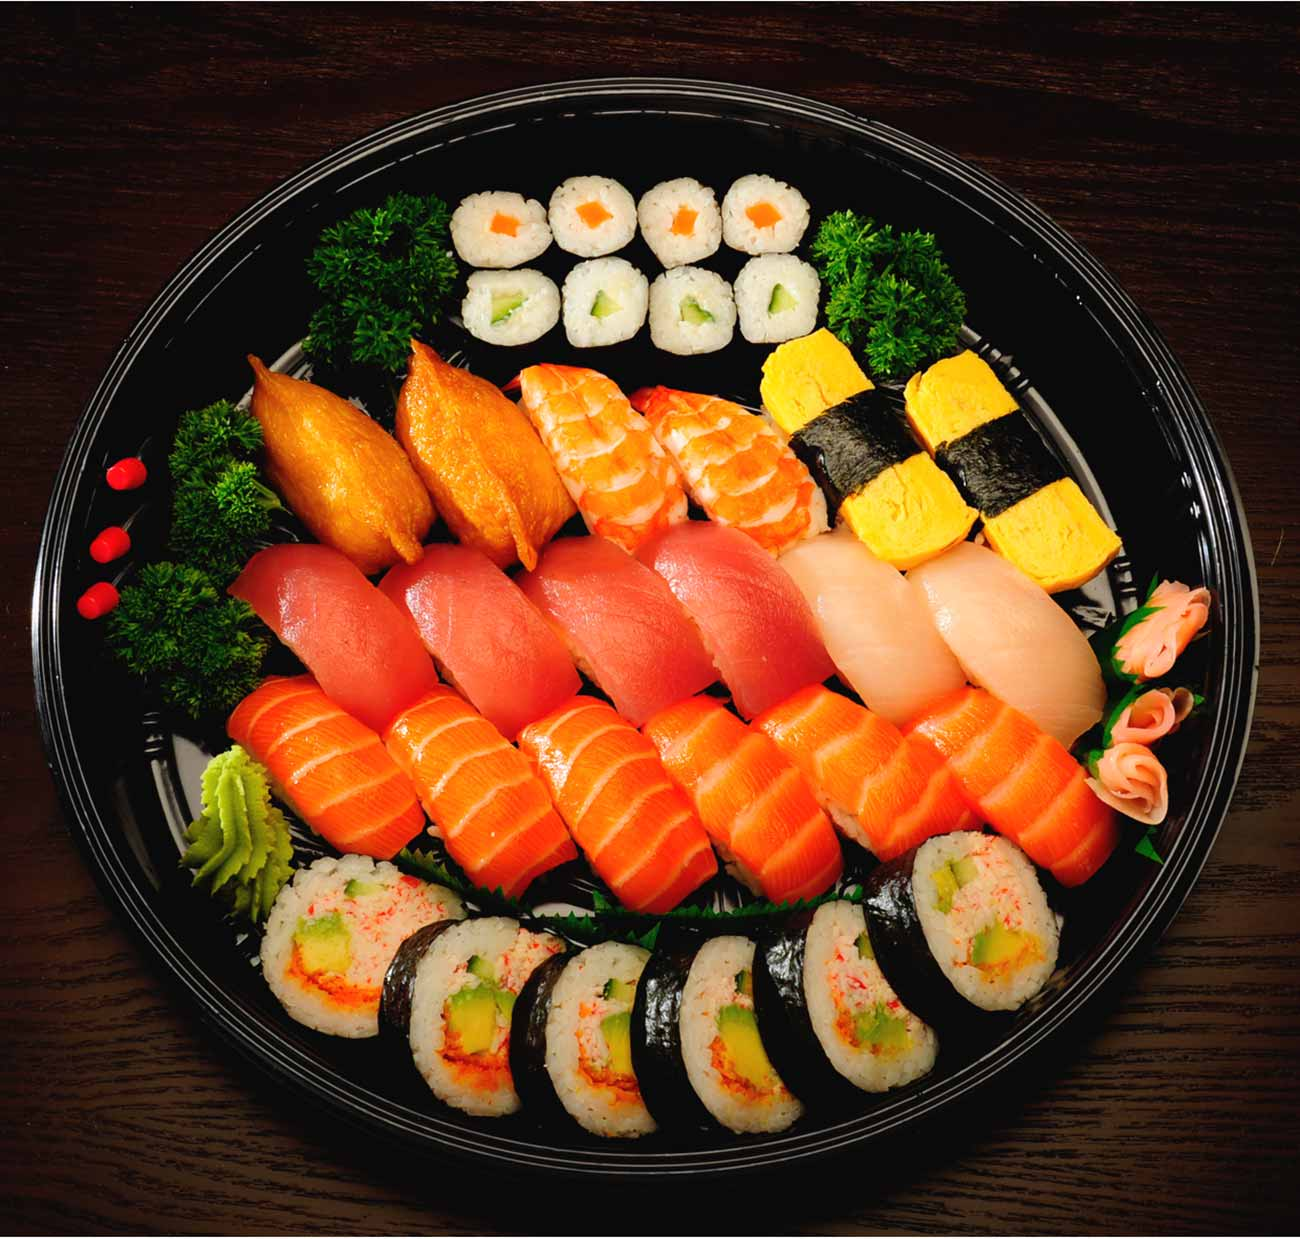 3. Assorted Nigiri Sushi and Nori Maki Platter (32 pcs)